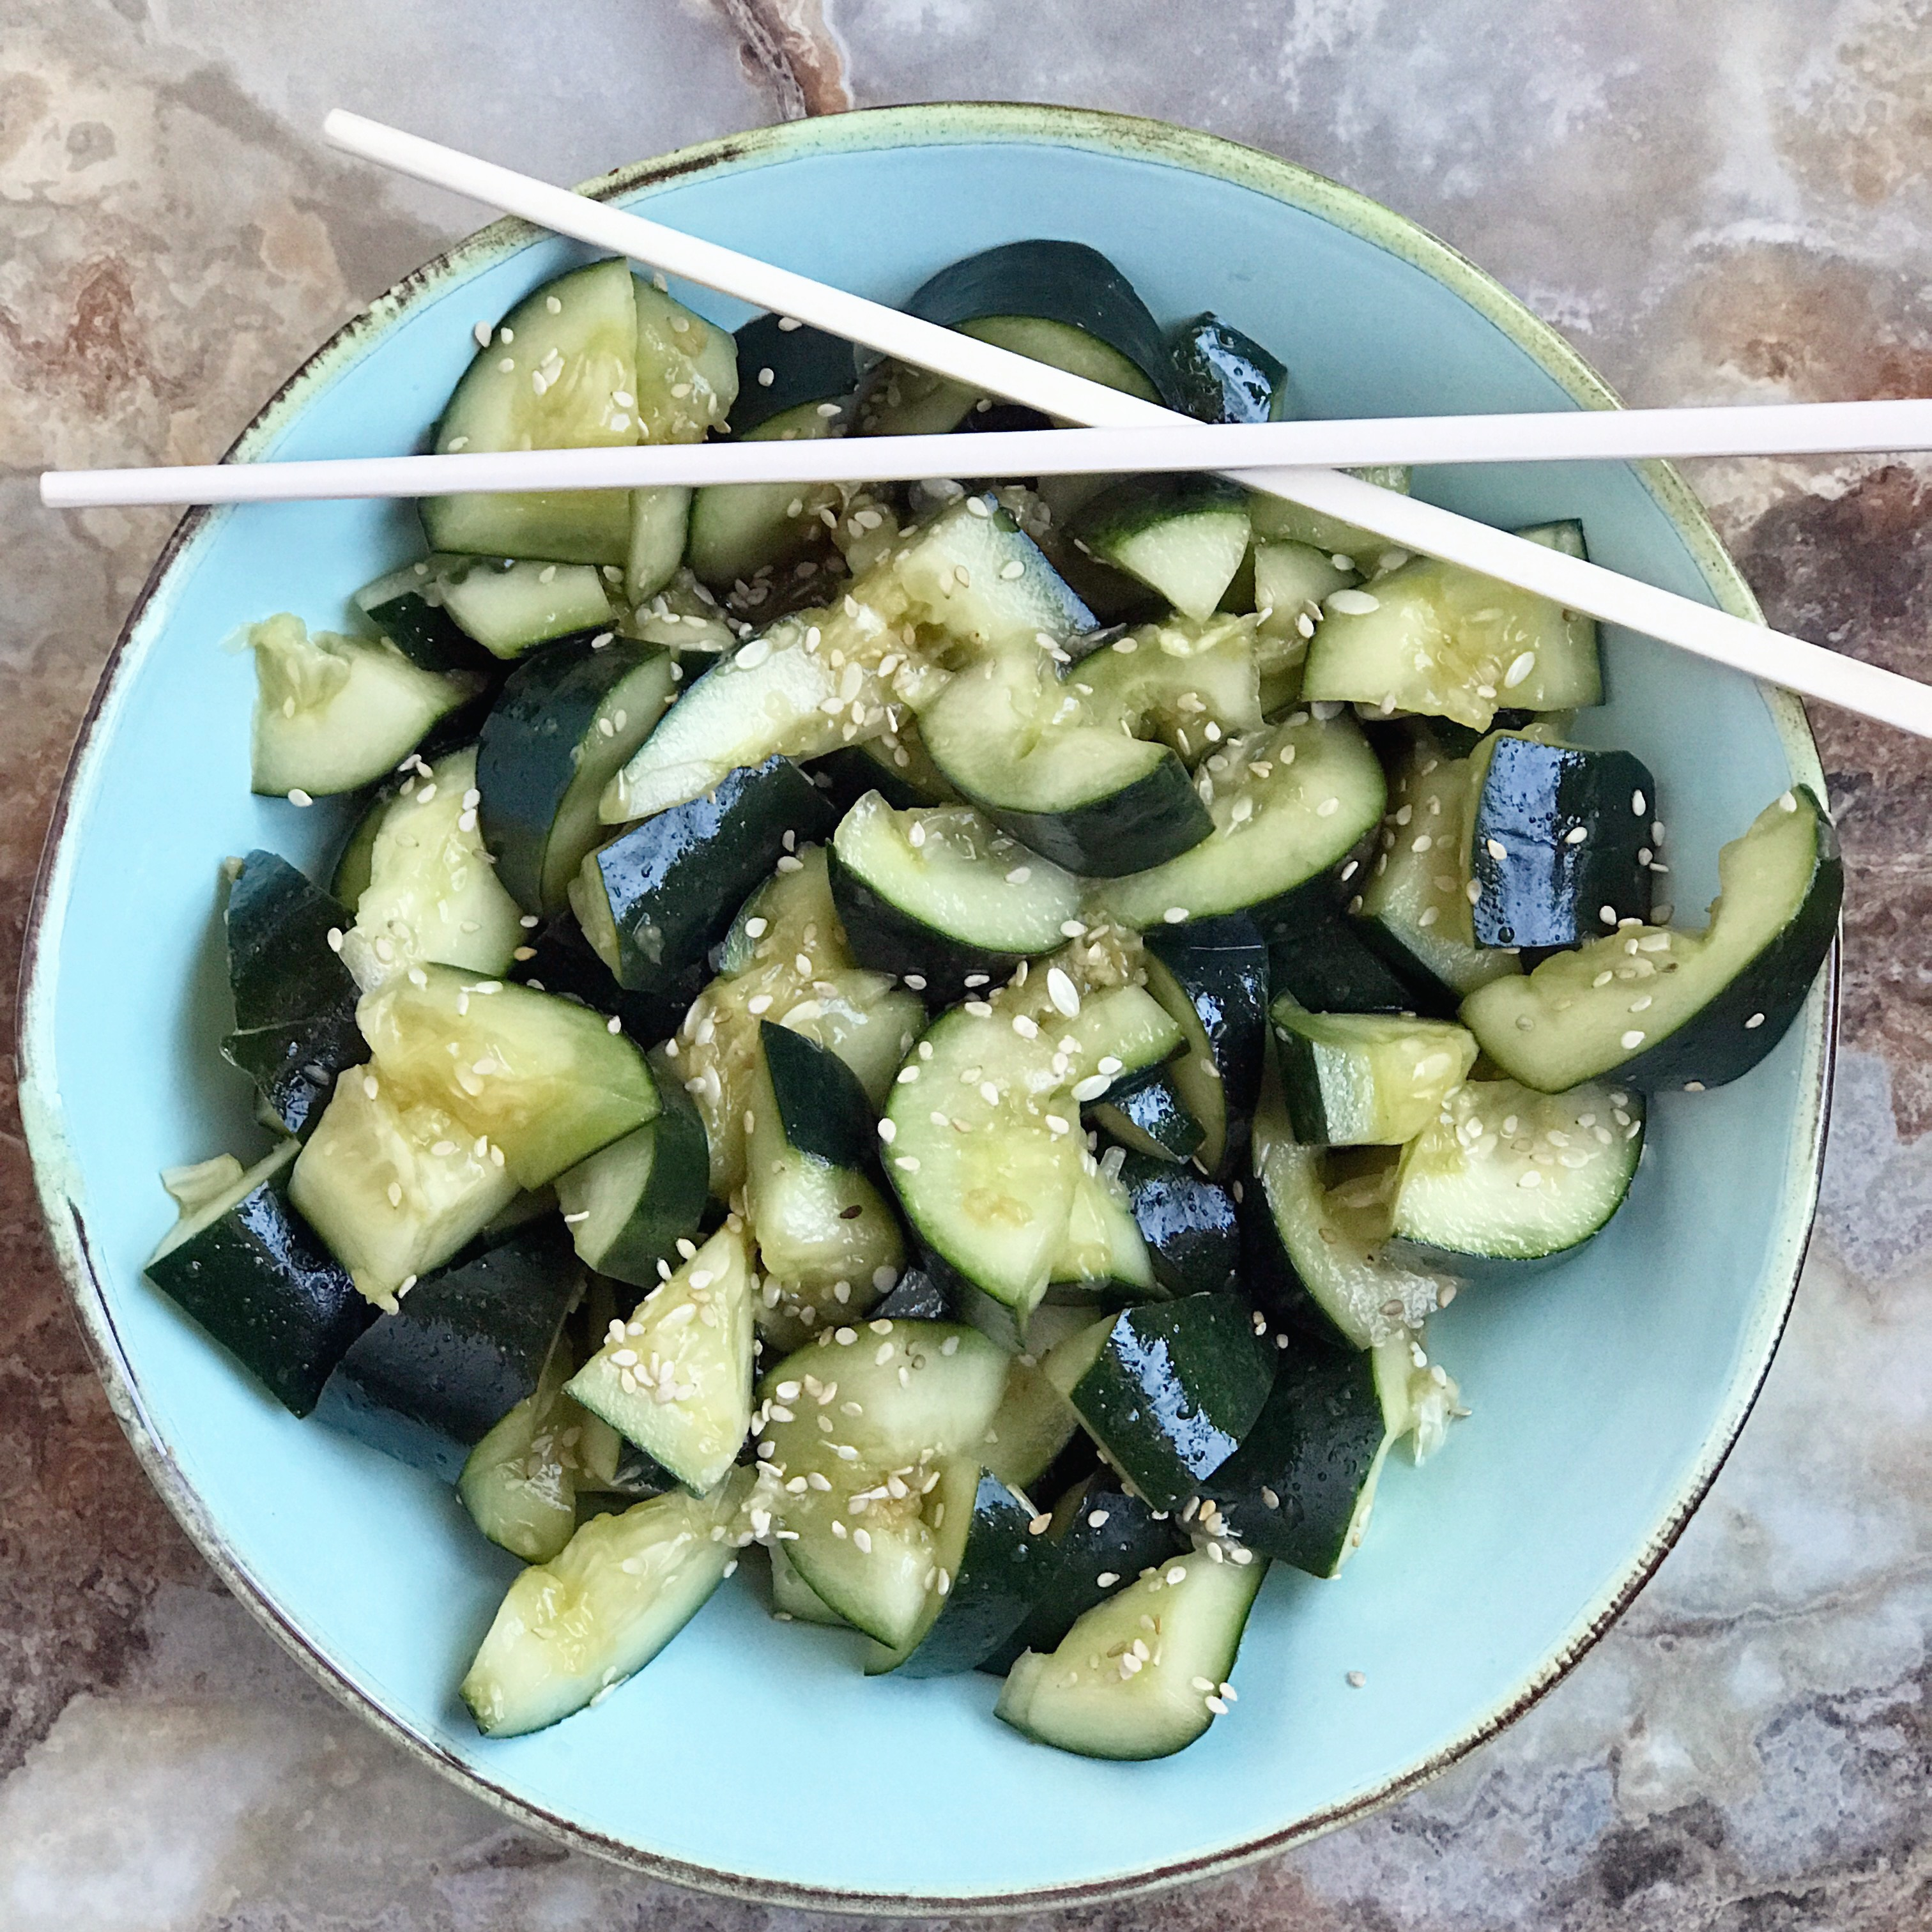 Easy Chinese cucumber salad made with smashed cucumbers and sesame